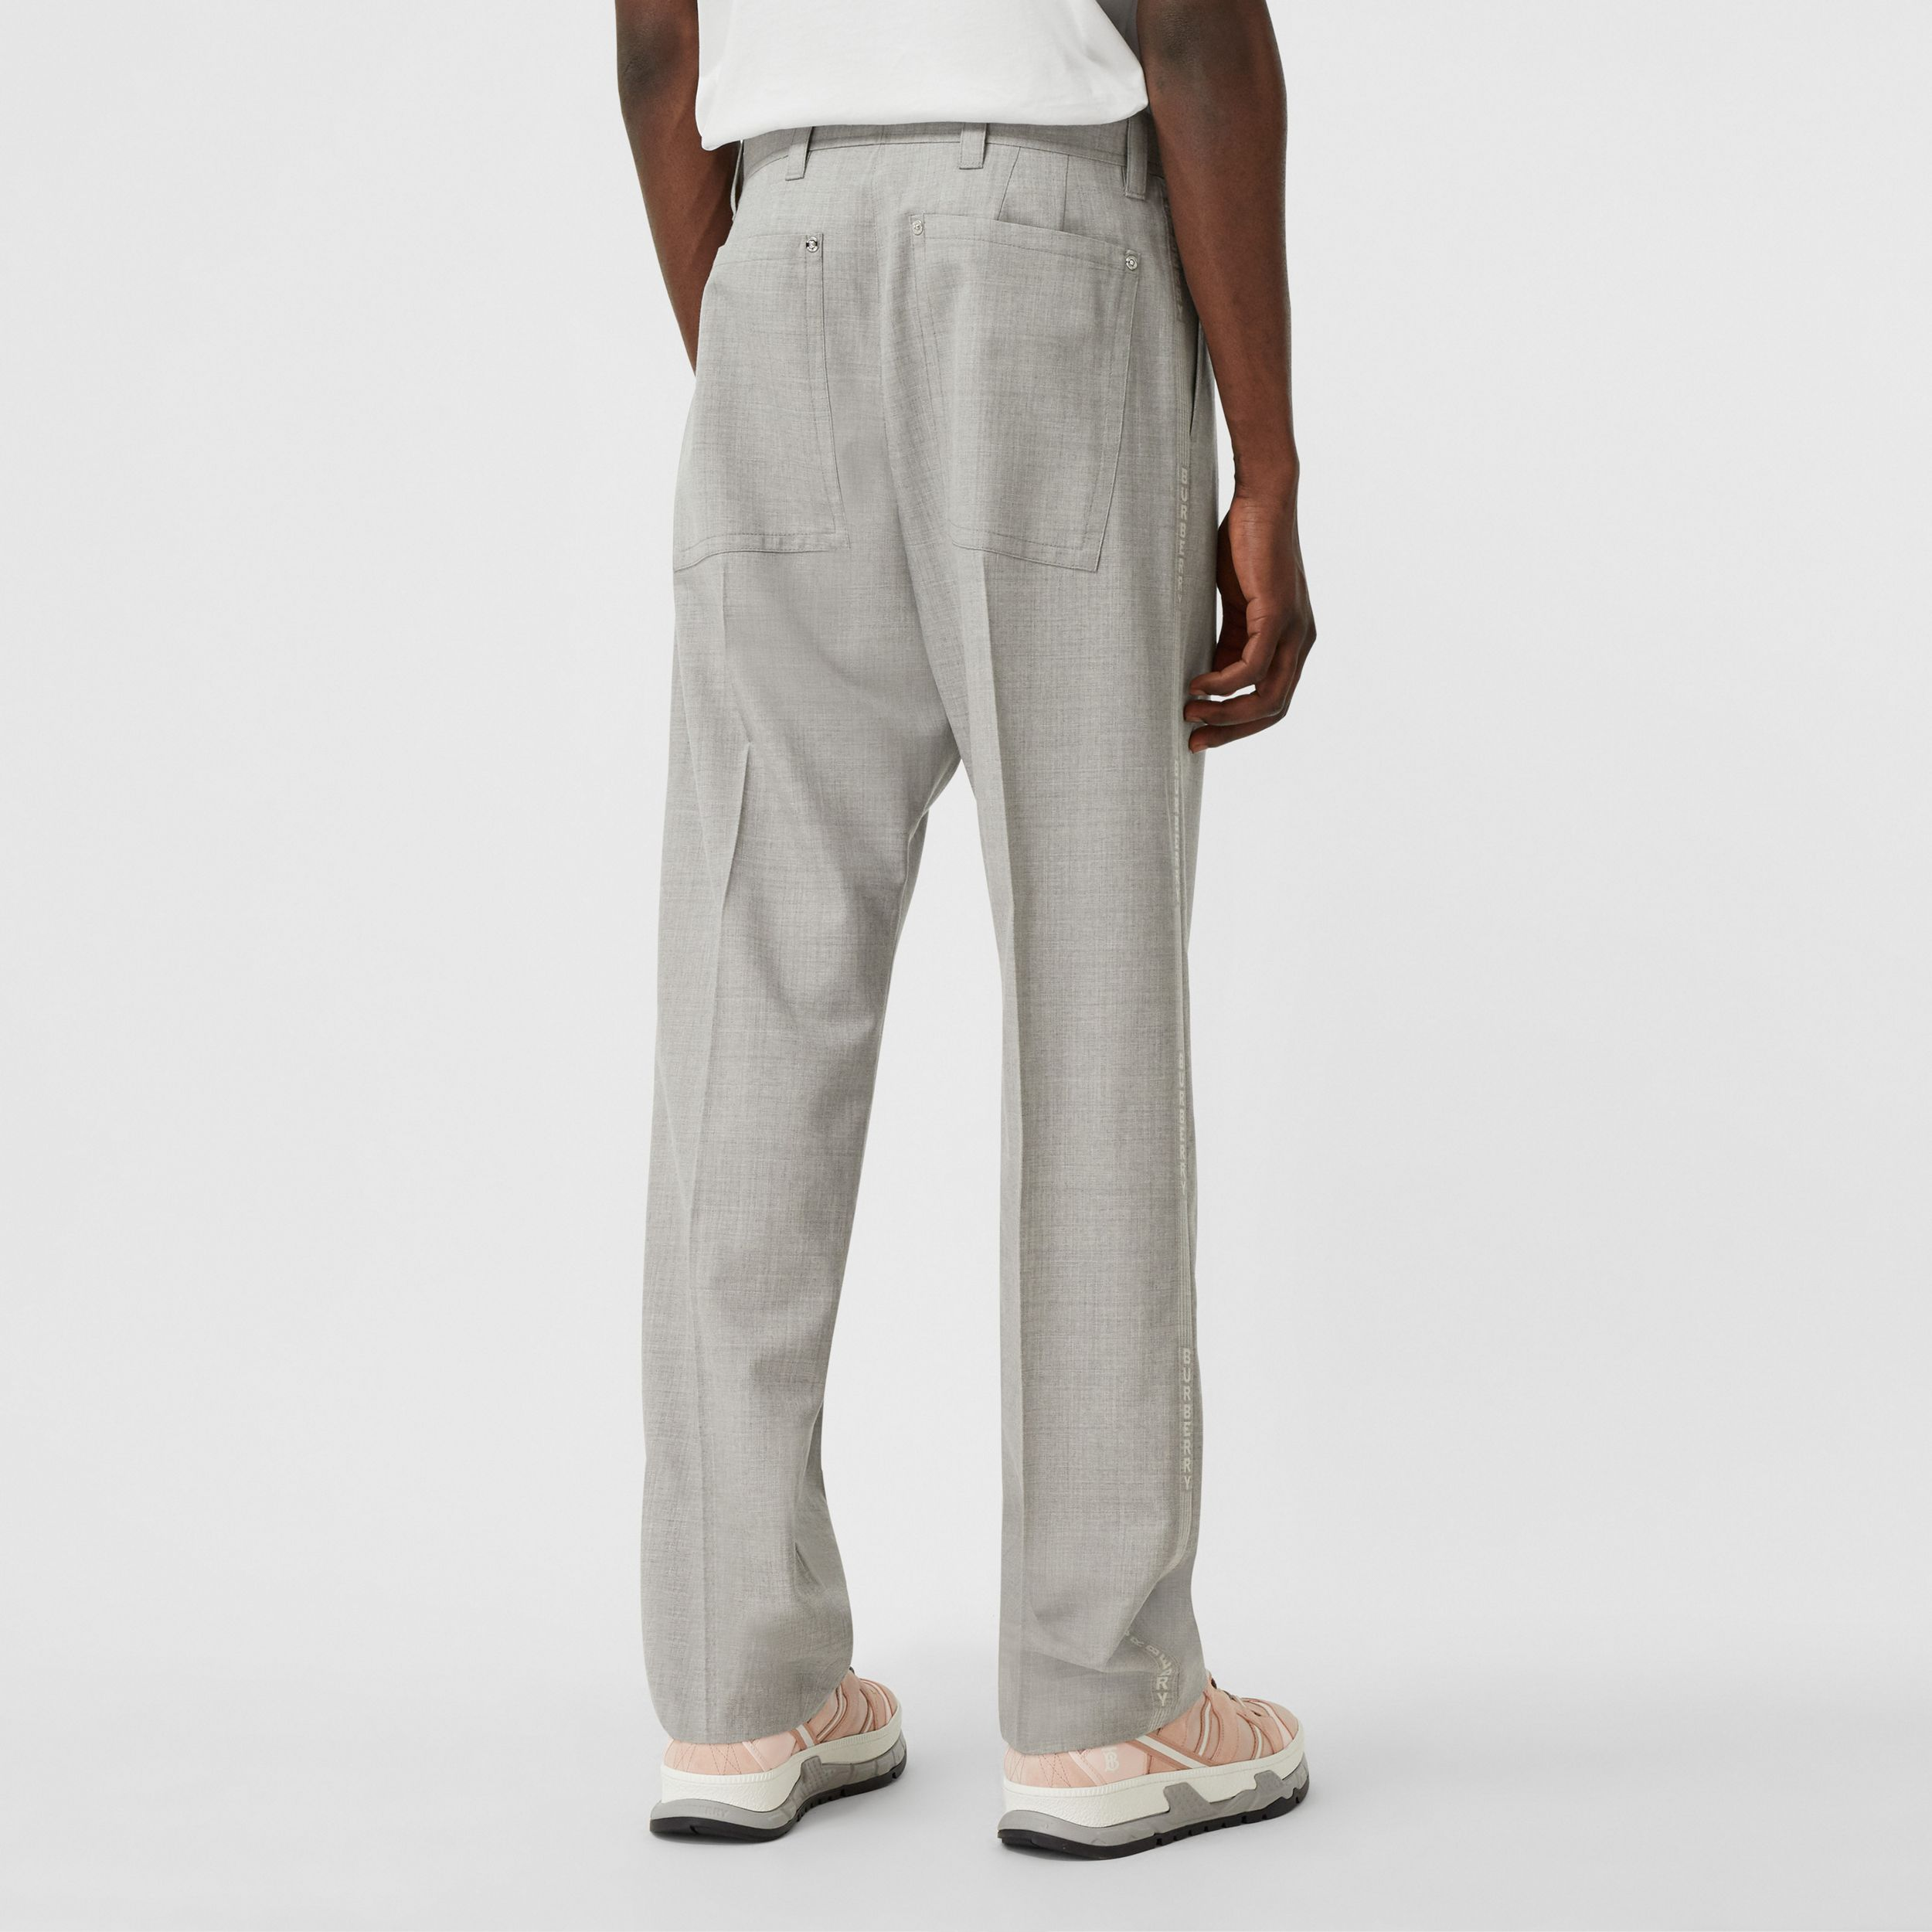 Logo Wool Jacquard Tailored Trousers in Light Pebble Grey - Men | Burberry Hong Kong S.A.R. - 3